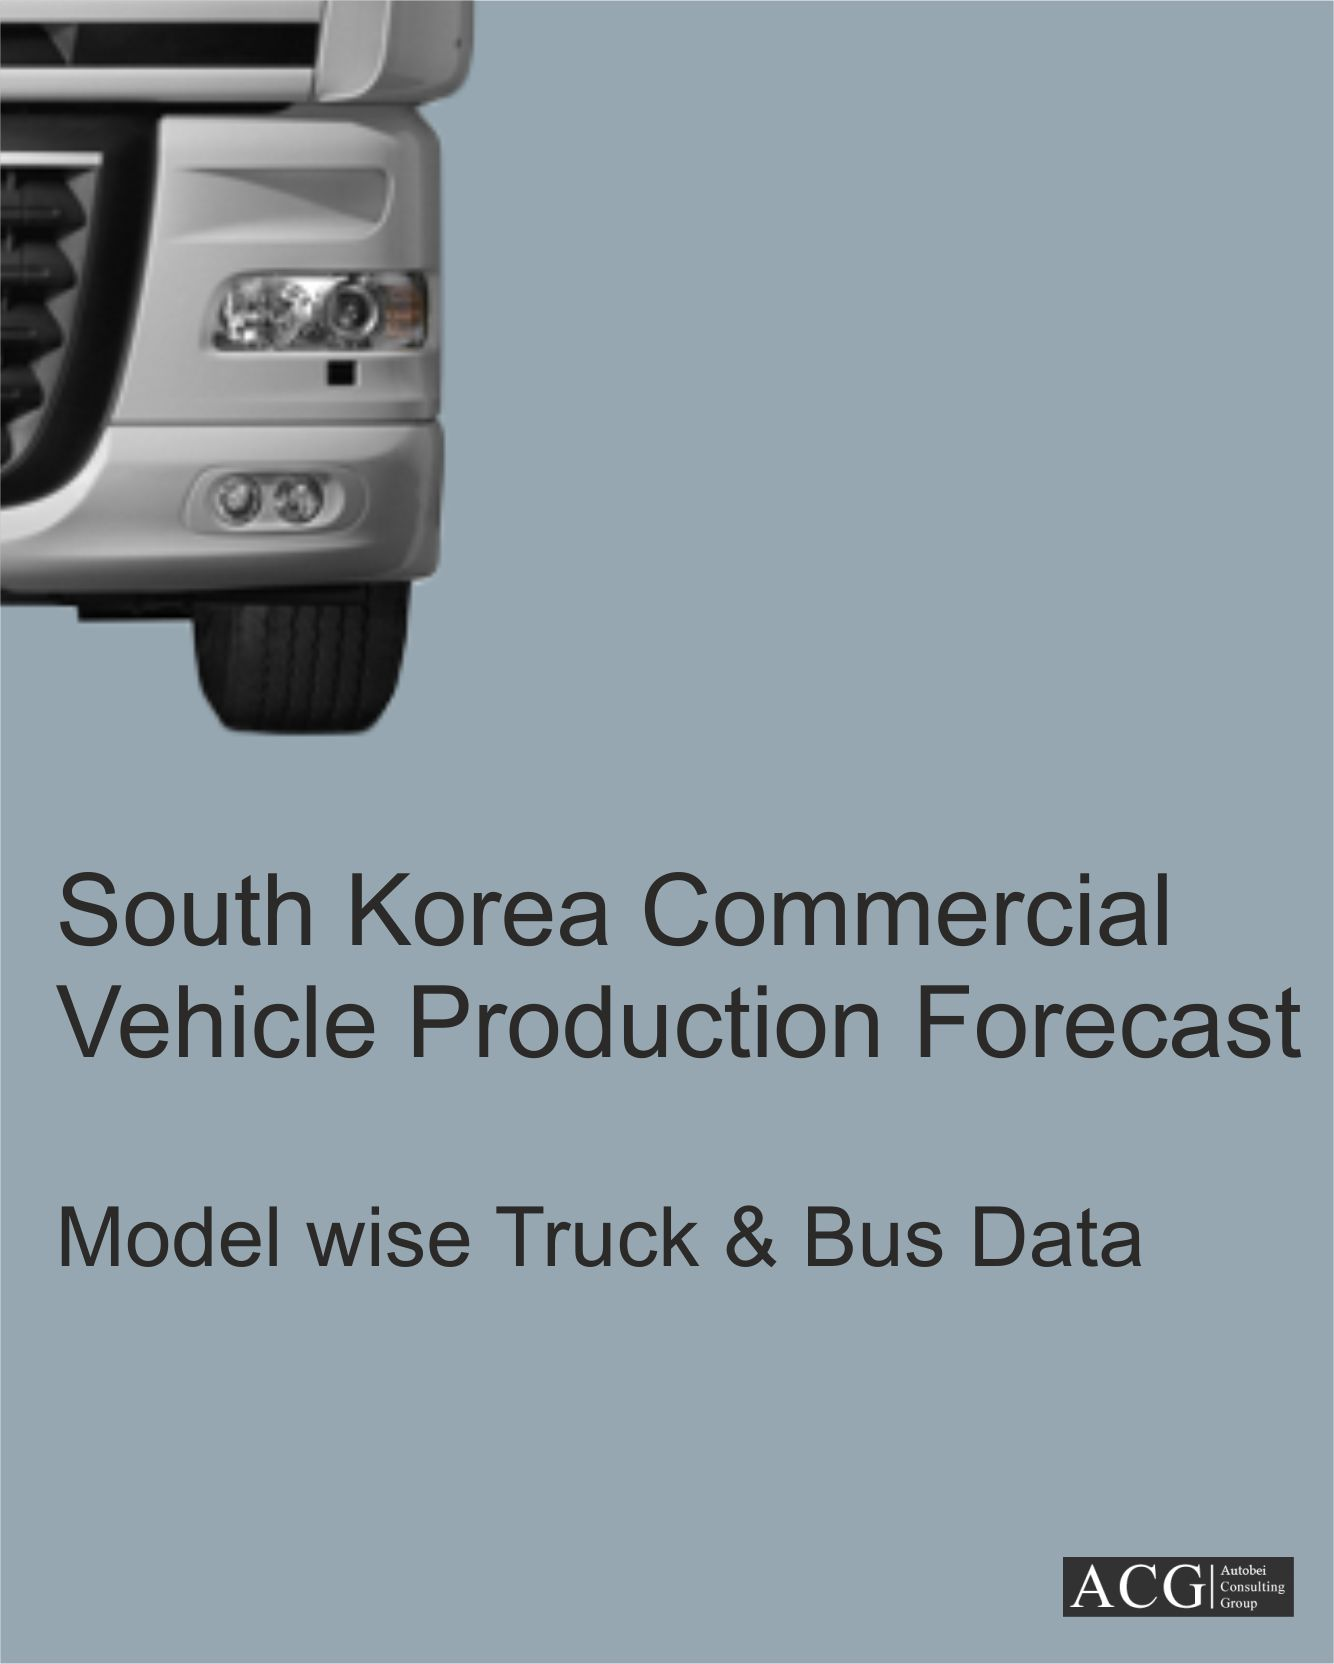 South Korea Commercial Vehicle Production Model level Trend & Forecast